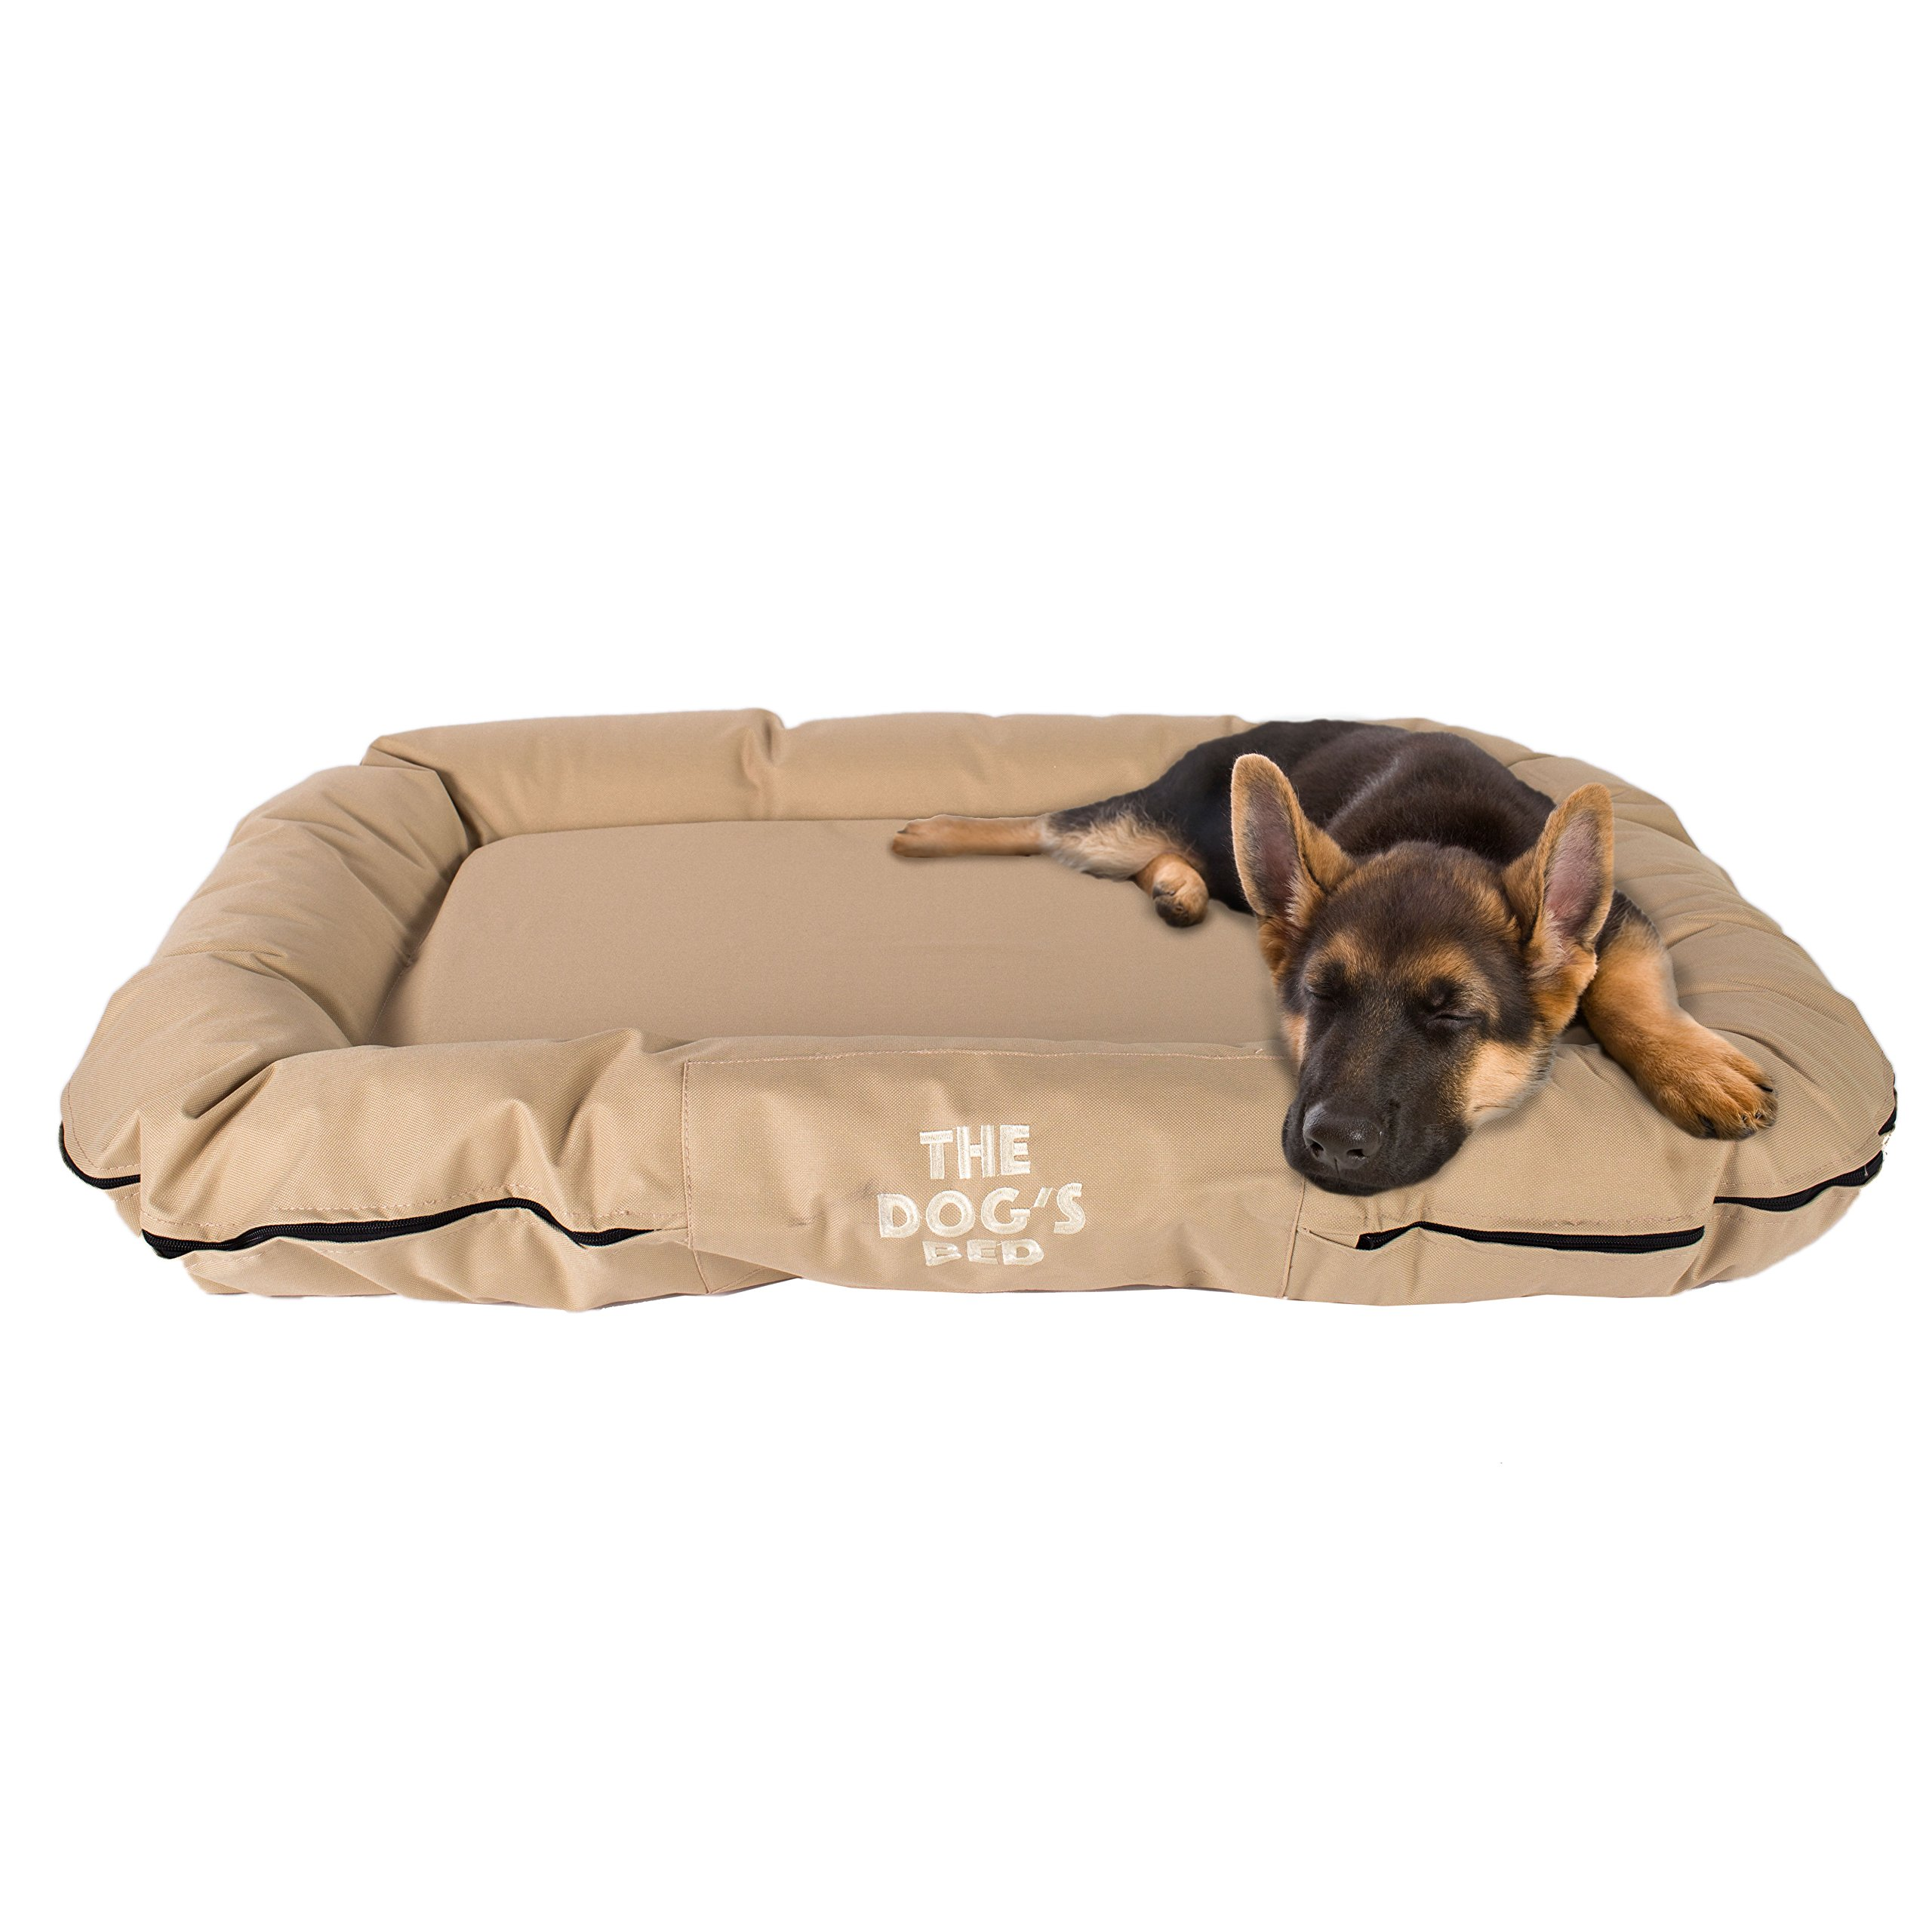 The Dog's Bed, Premium Dog Beds, Premium Quality Water Resistant Oxford Fabric & Designed for Comfort, Washable Cover, Boarding Kennel Favorite